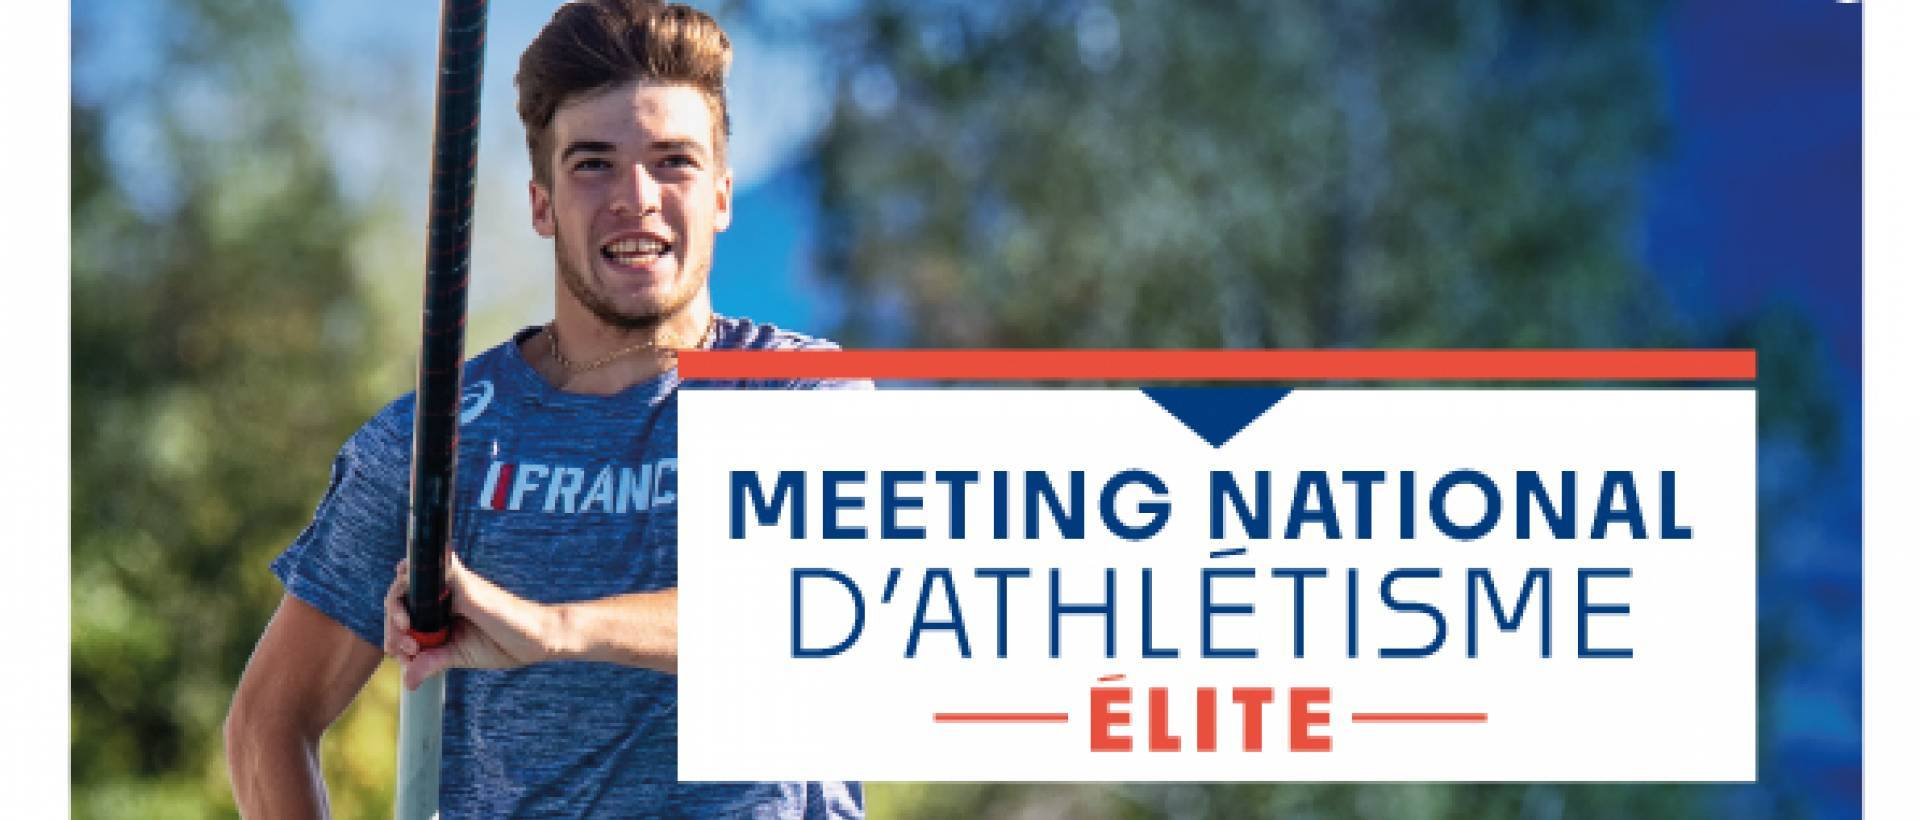 meeting national d'athlétisme